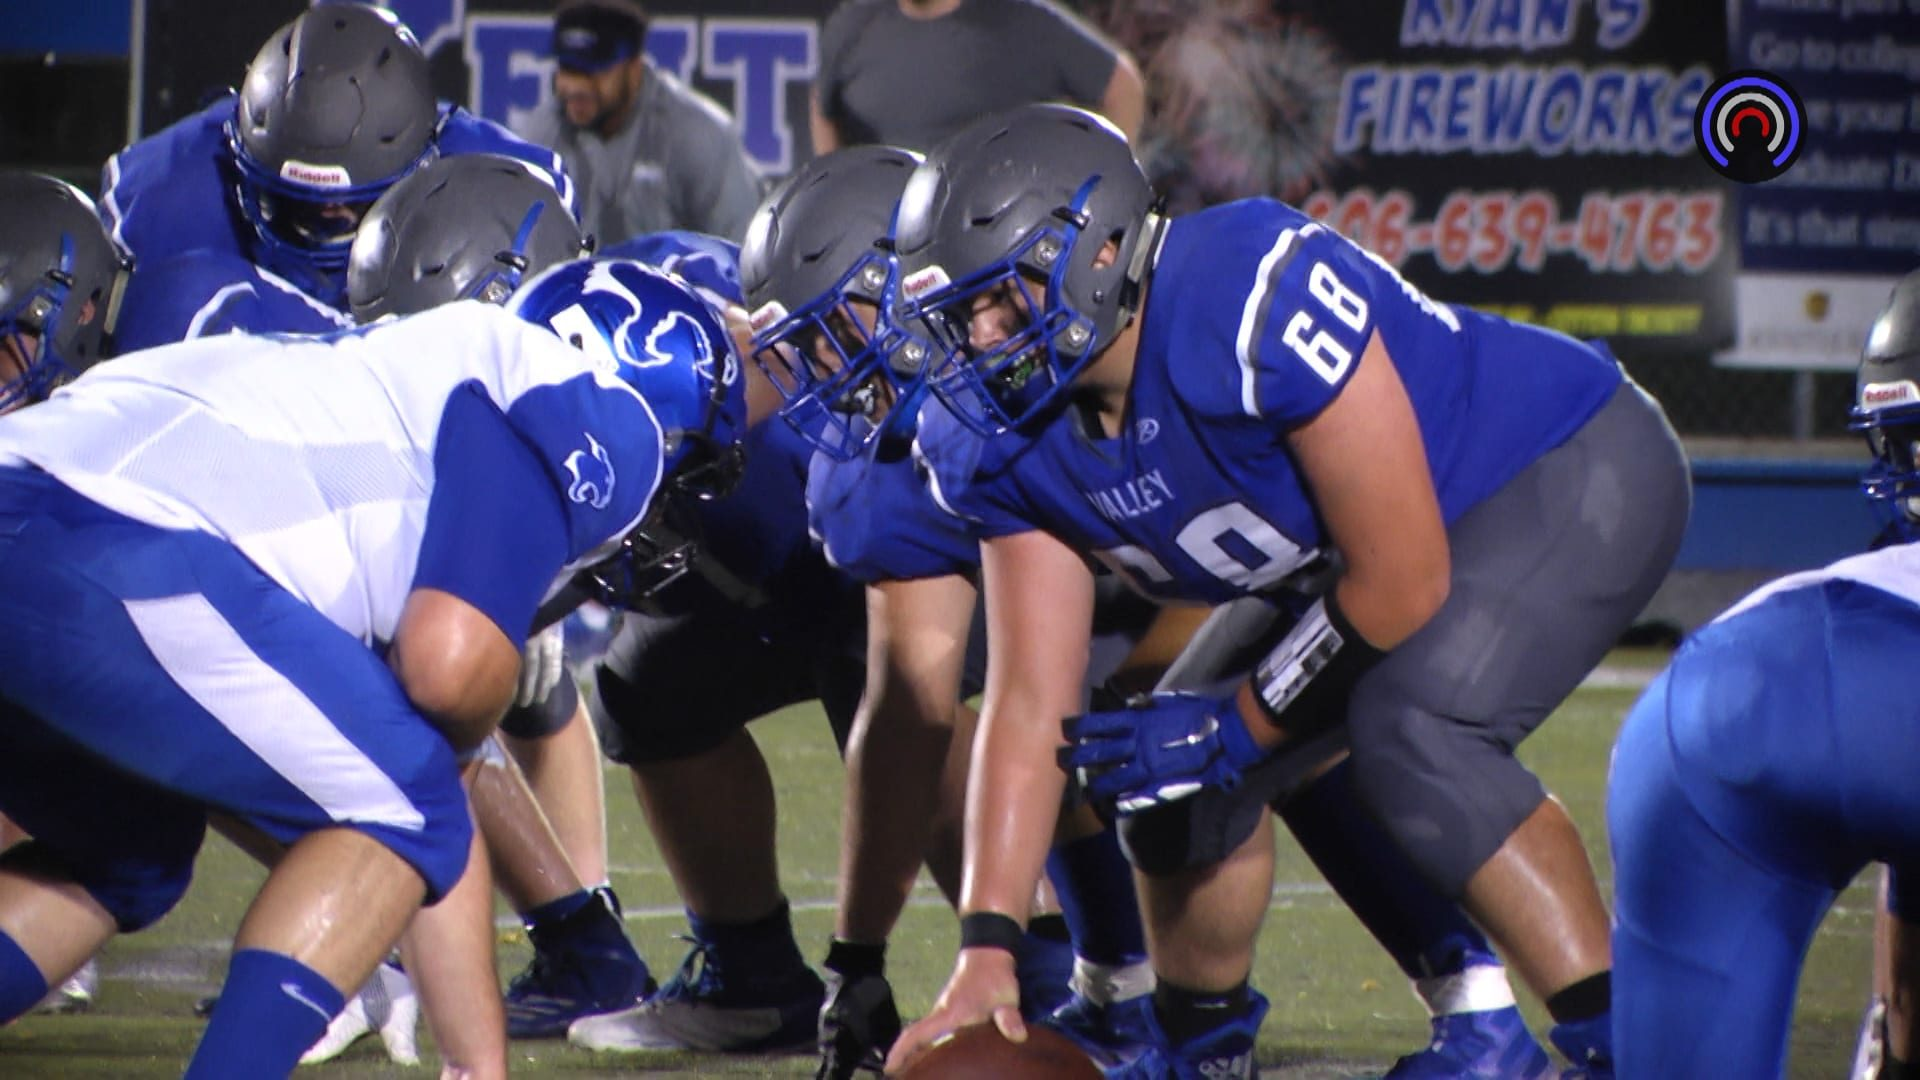 HS FOOTBALL: Cougars drop home match-up with Union